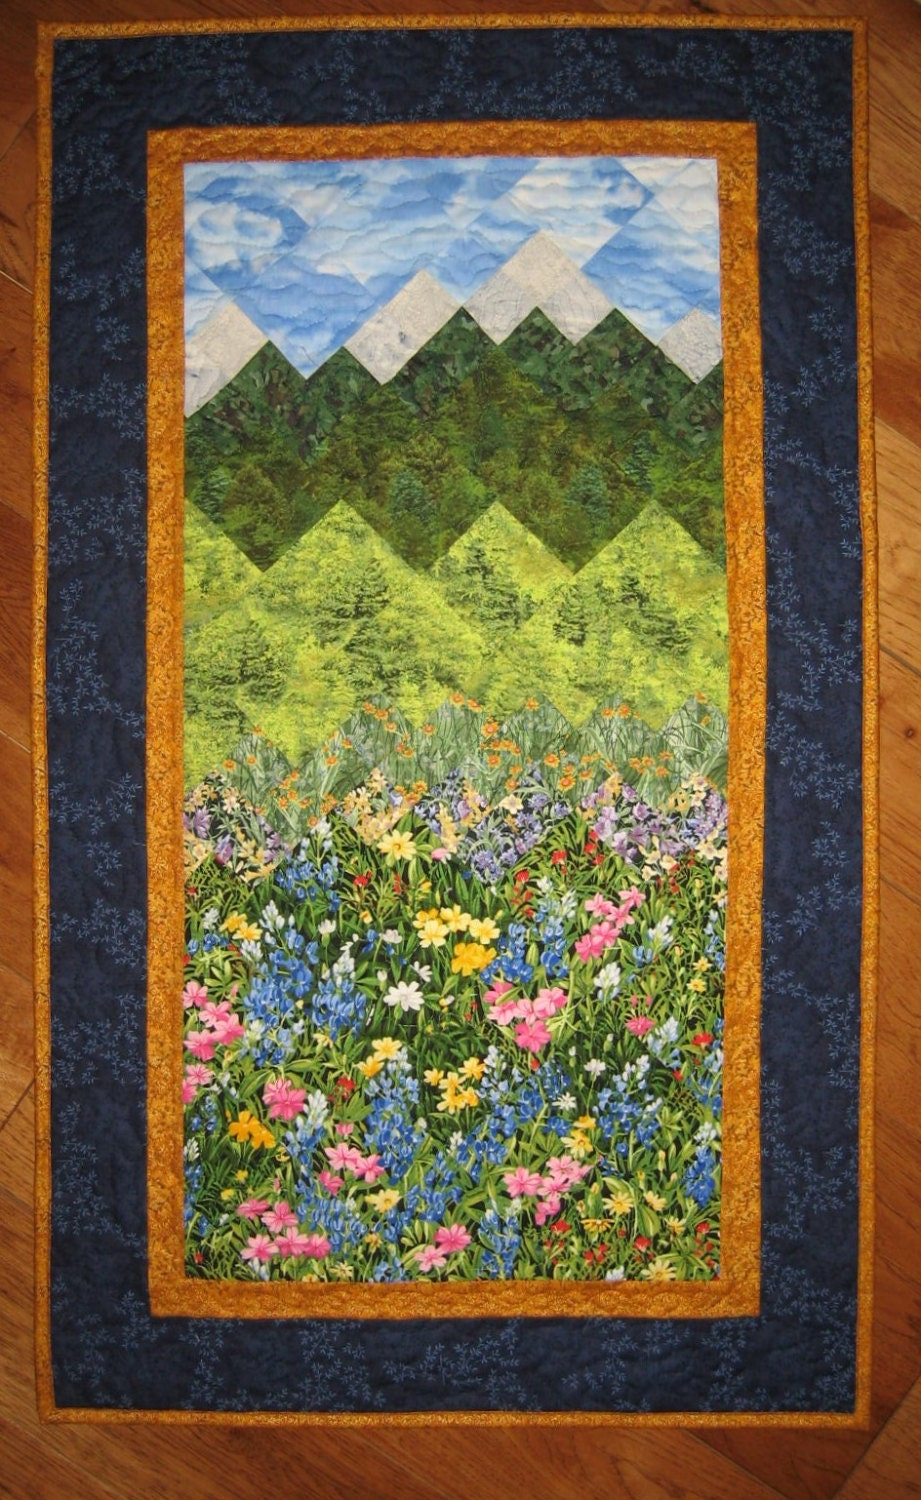 summer flowers and mountains art quilt fabric wall hanging. Black Bedroom Furniture Sets. Home Design Ideas